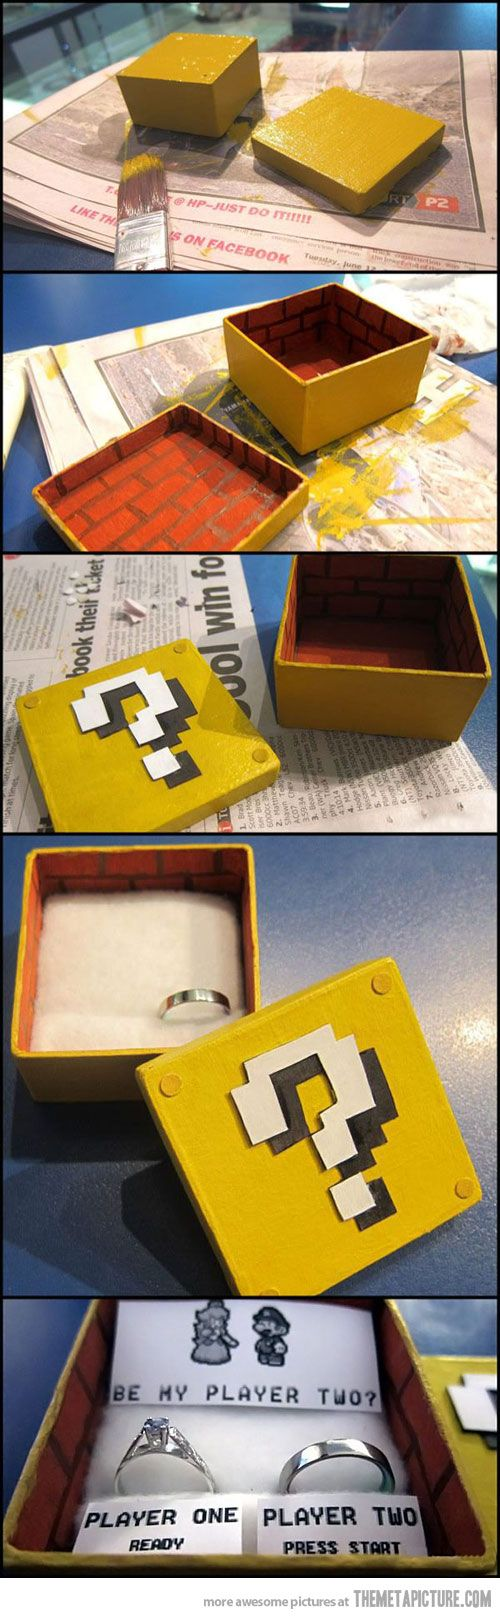 How to propose like a gamer…for you Reggie White: Like A Boss, Wedding Propo, Videos Games, Funny Pictures, Cute Ideas, Propo Ideas, Supermario, Super Mario, Marriage Propo